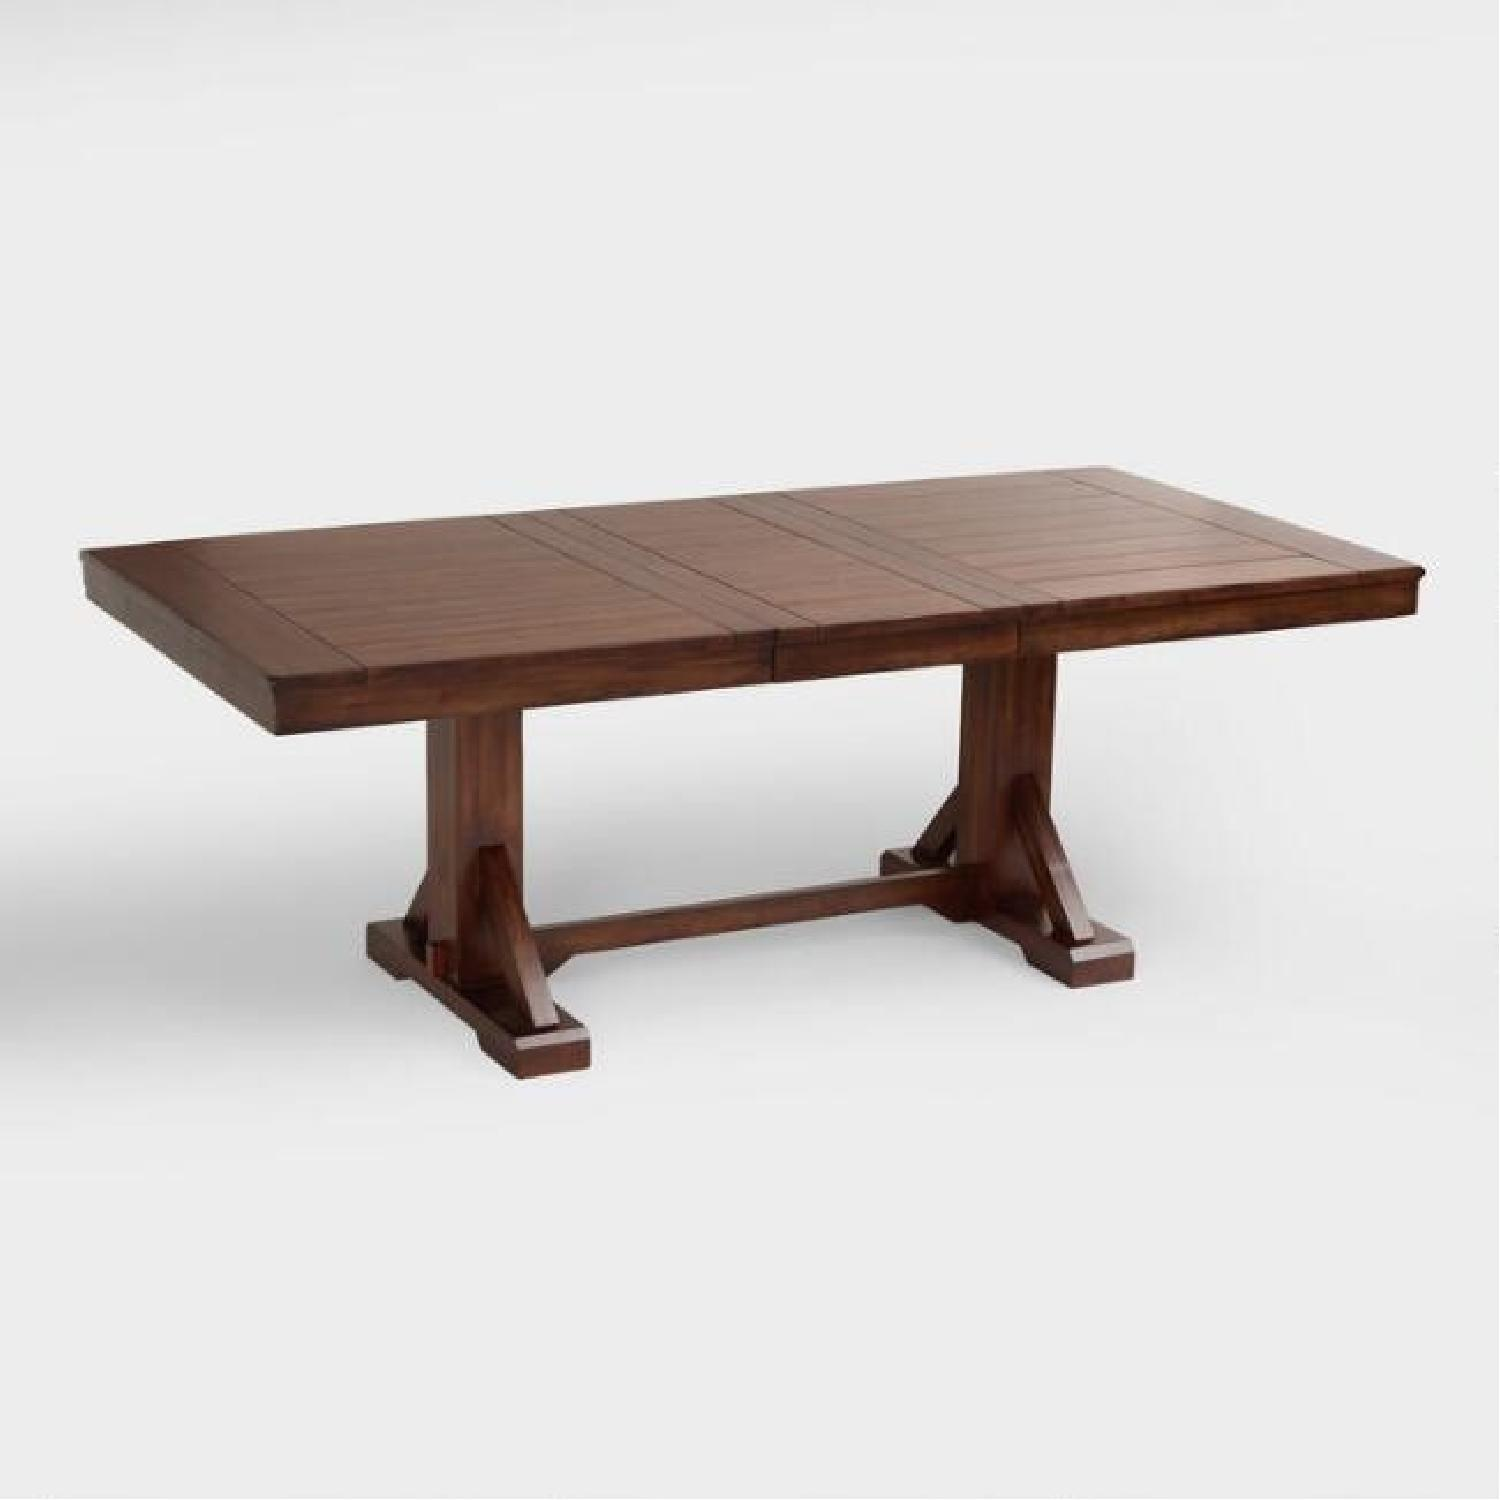 World Market Solid Wood Dining Table w/ 1 Bench + 2 Chairs - image-3